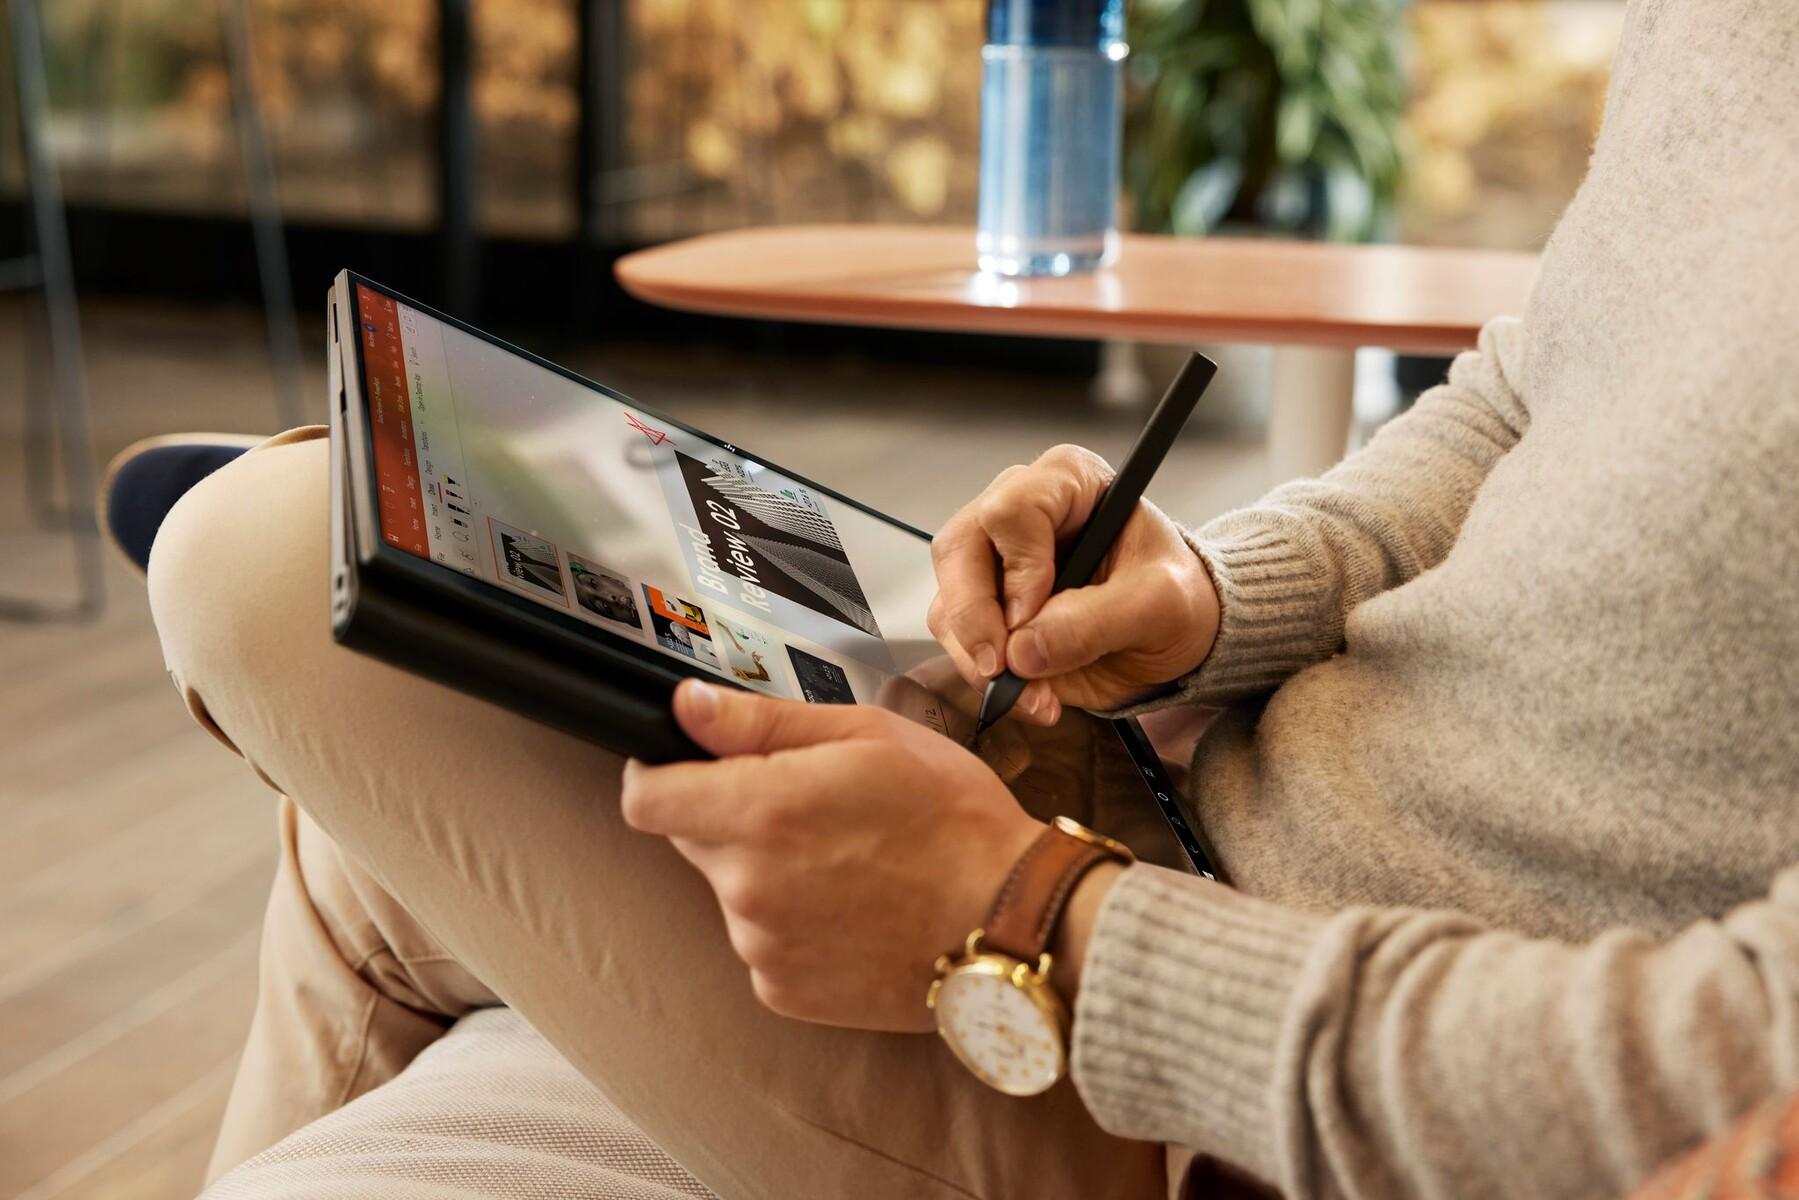 CES 2021: HP launches 2 Dragonfly laptops with 11th gen Intel chips